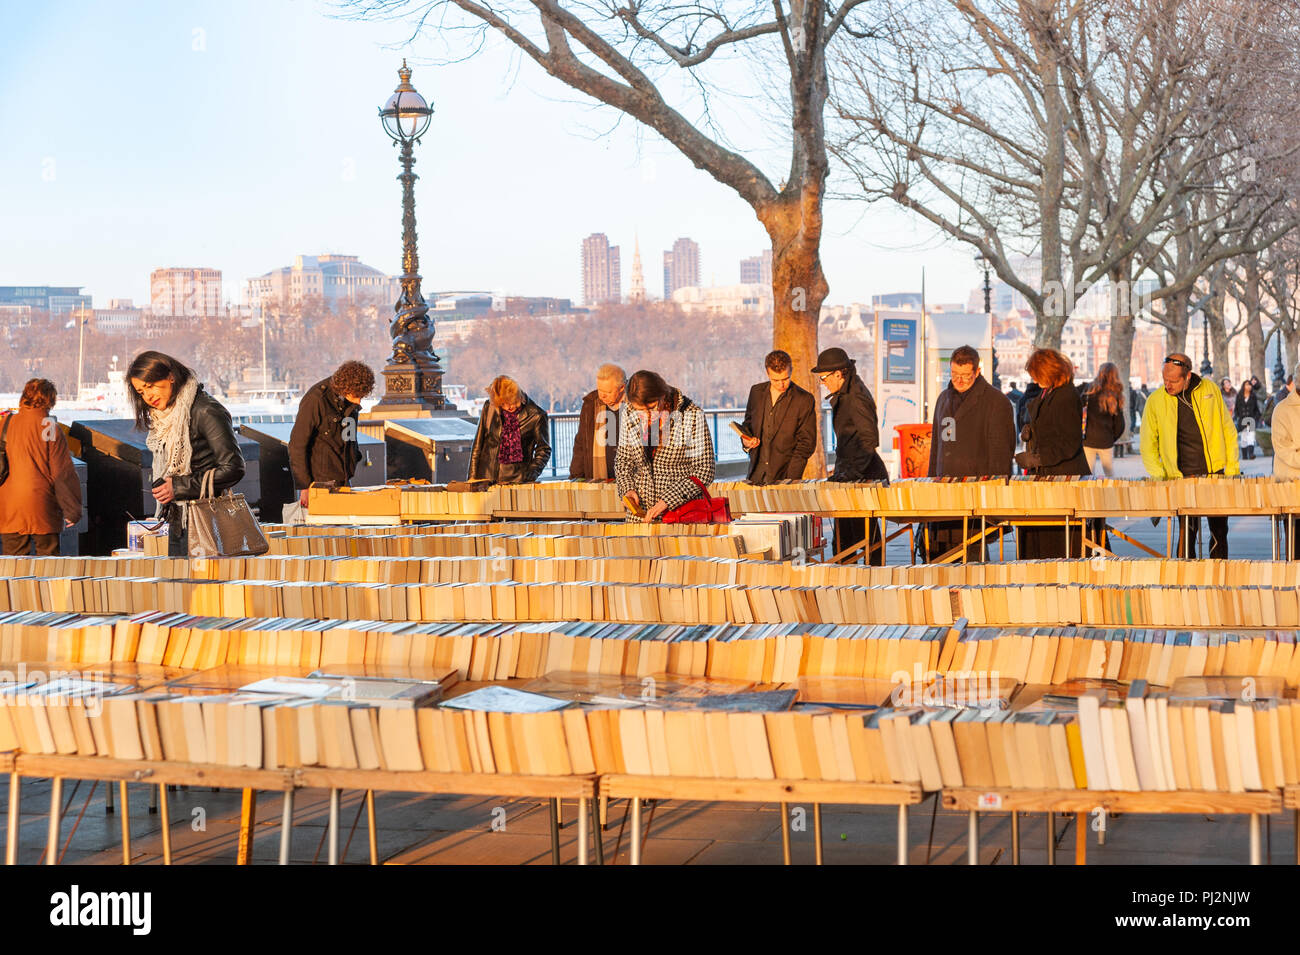 The Southbank Book Market, London, UK - Stock Image